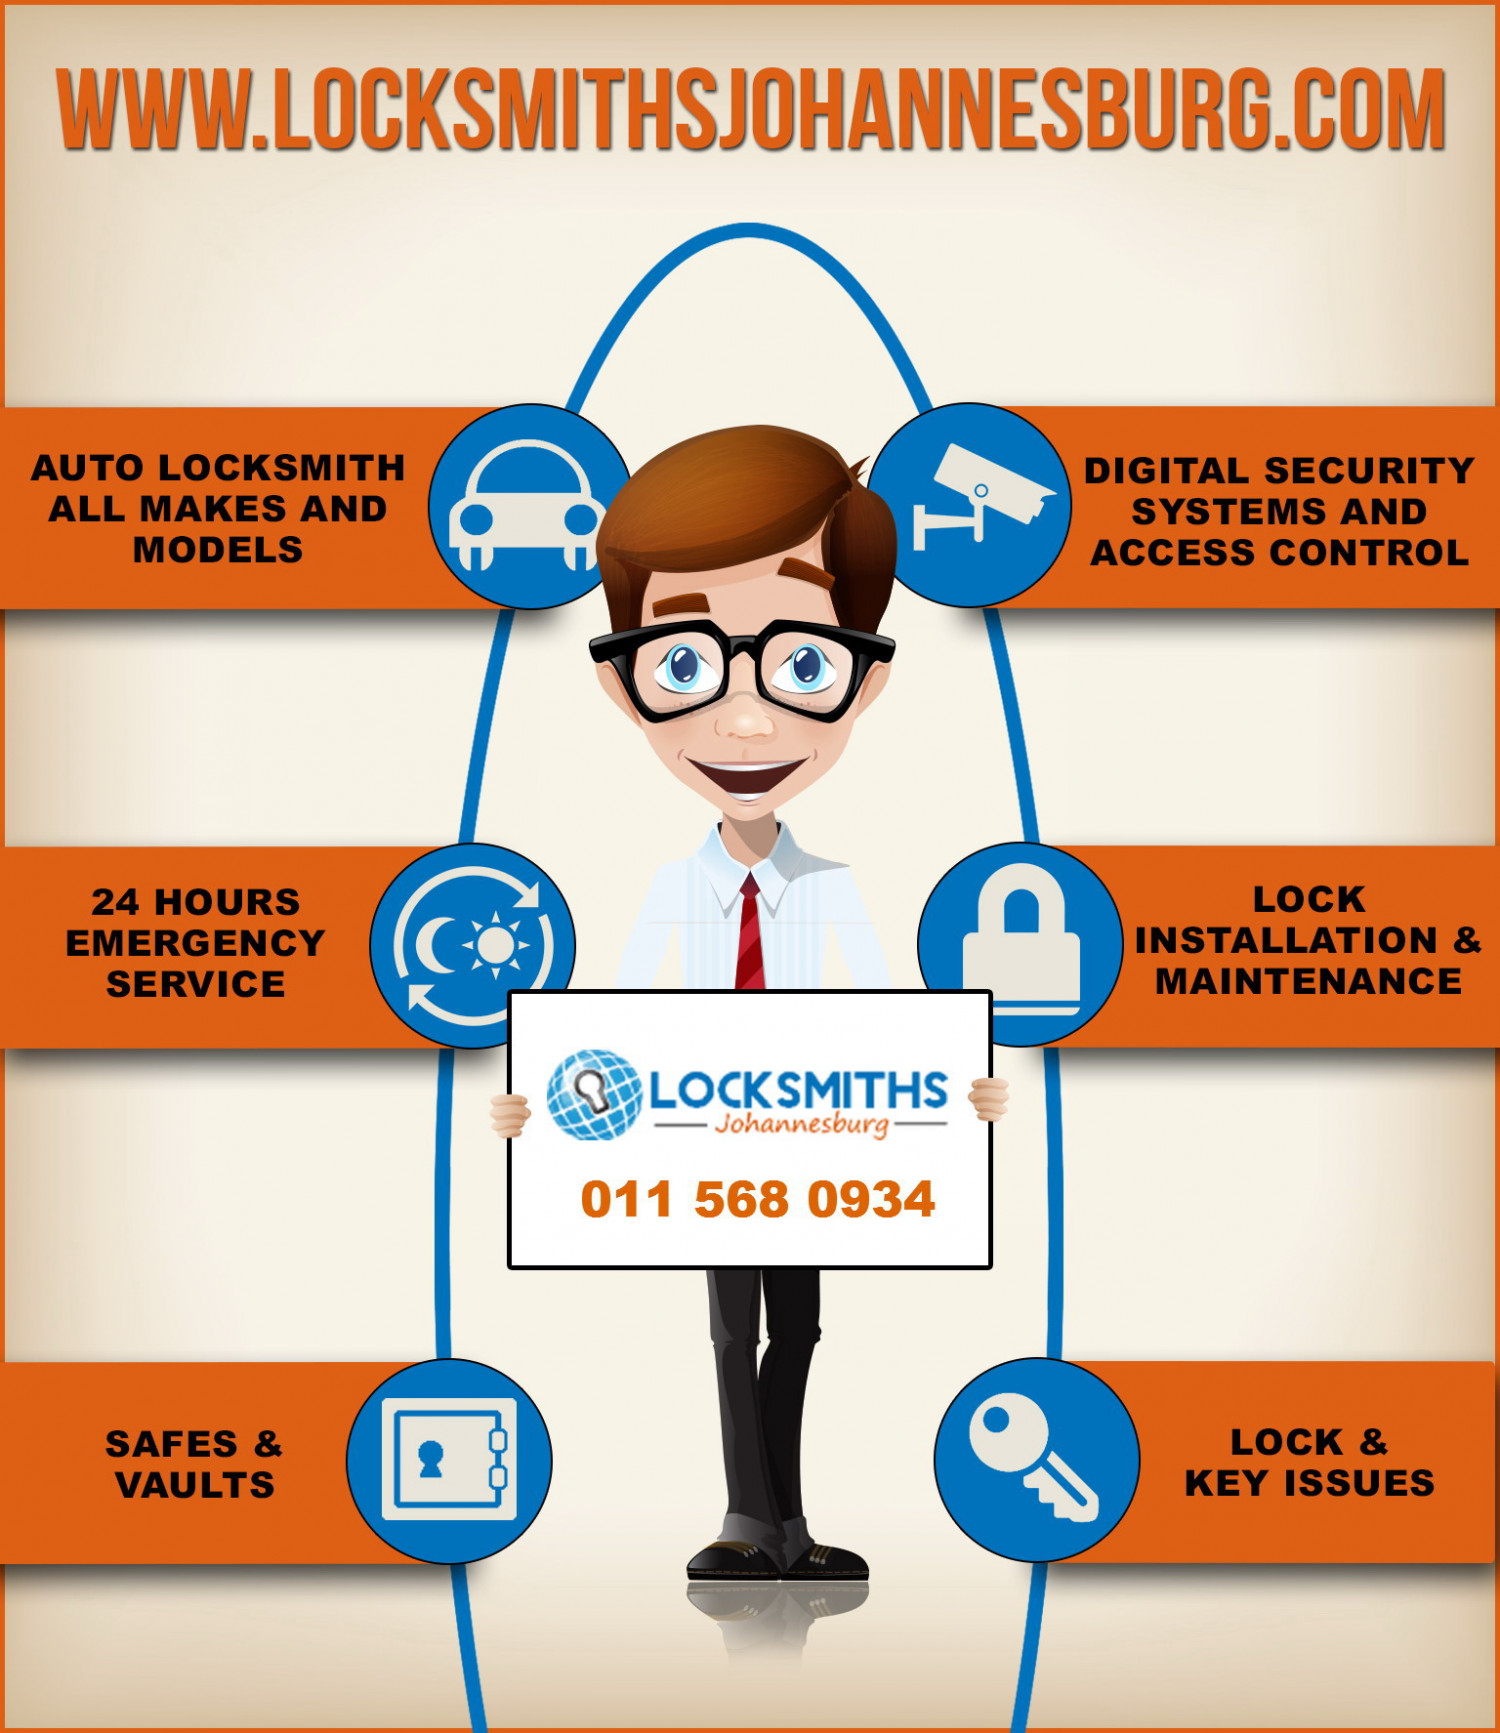 How the services of a good Security and lock fitting company can assist in protecting your valuable assets Infographic